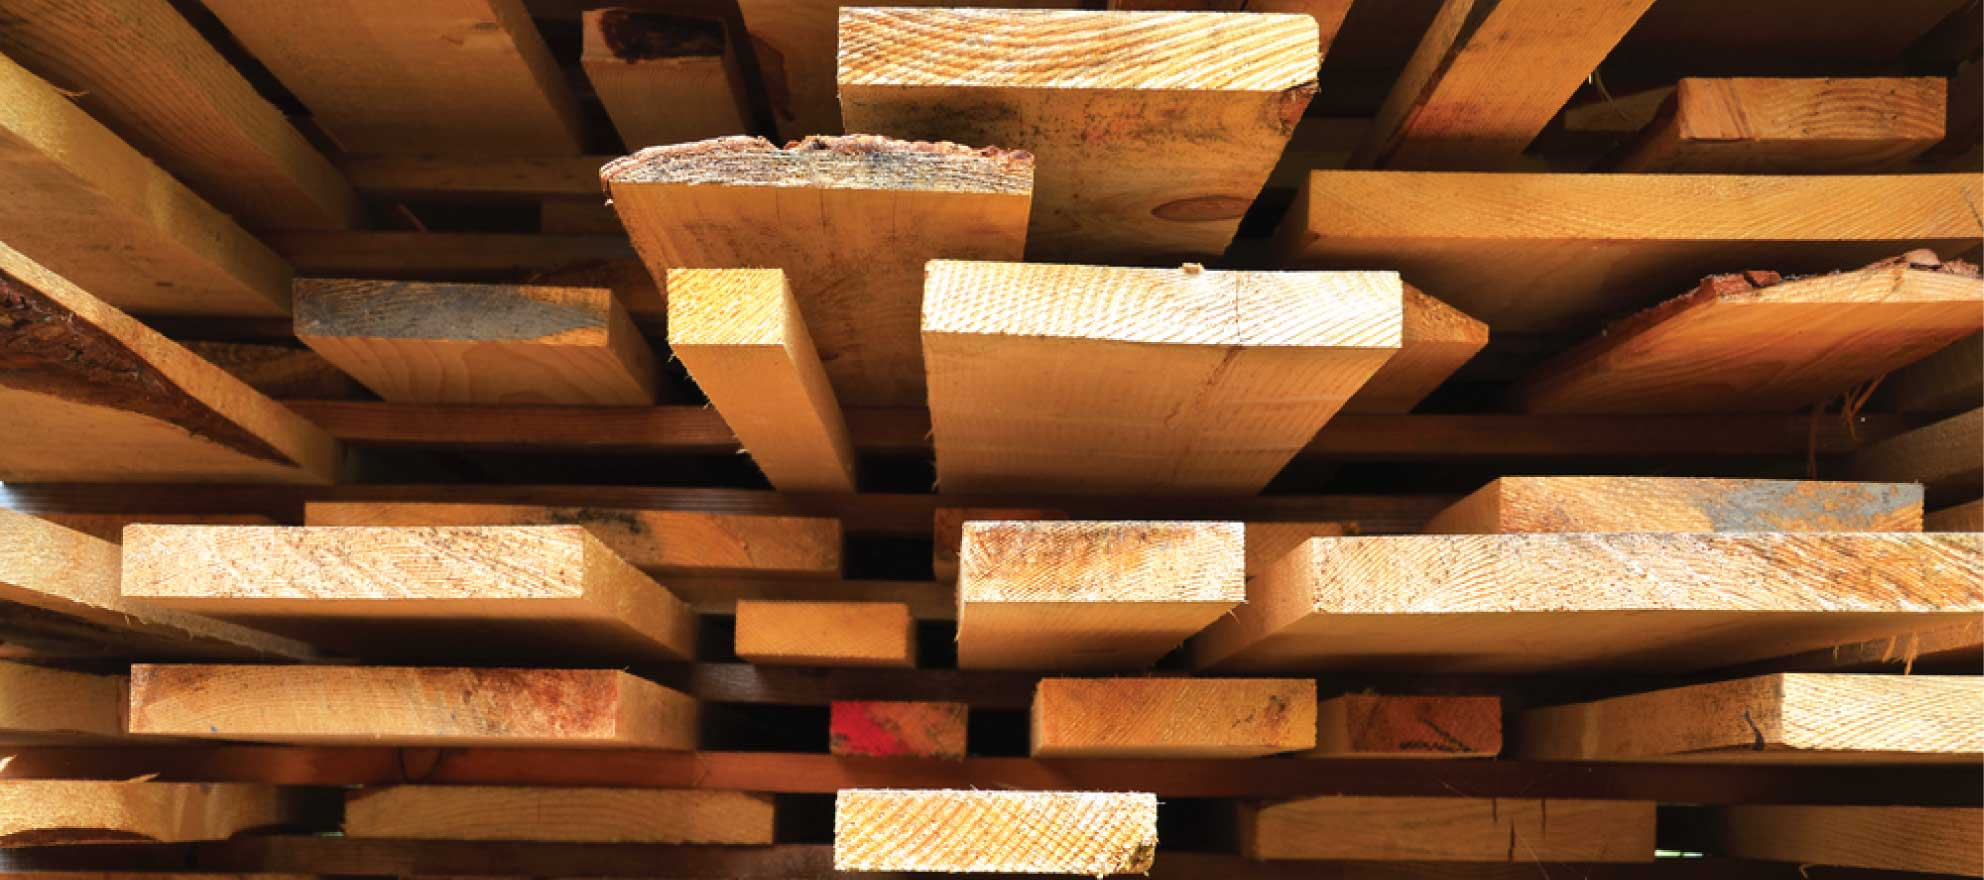 Multifamily construction materials fluctuate in price